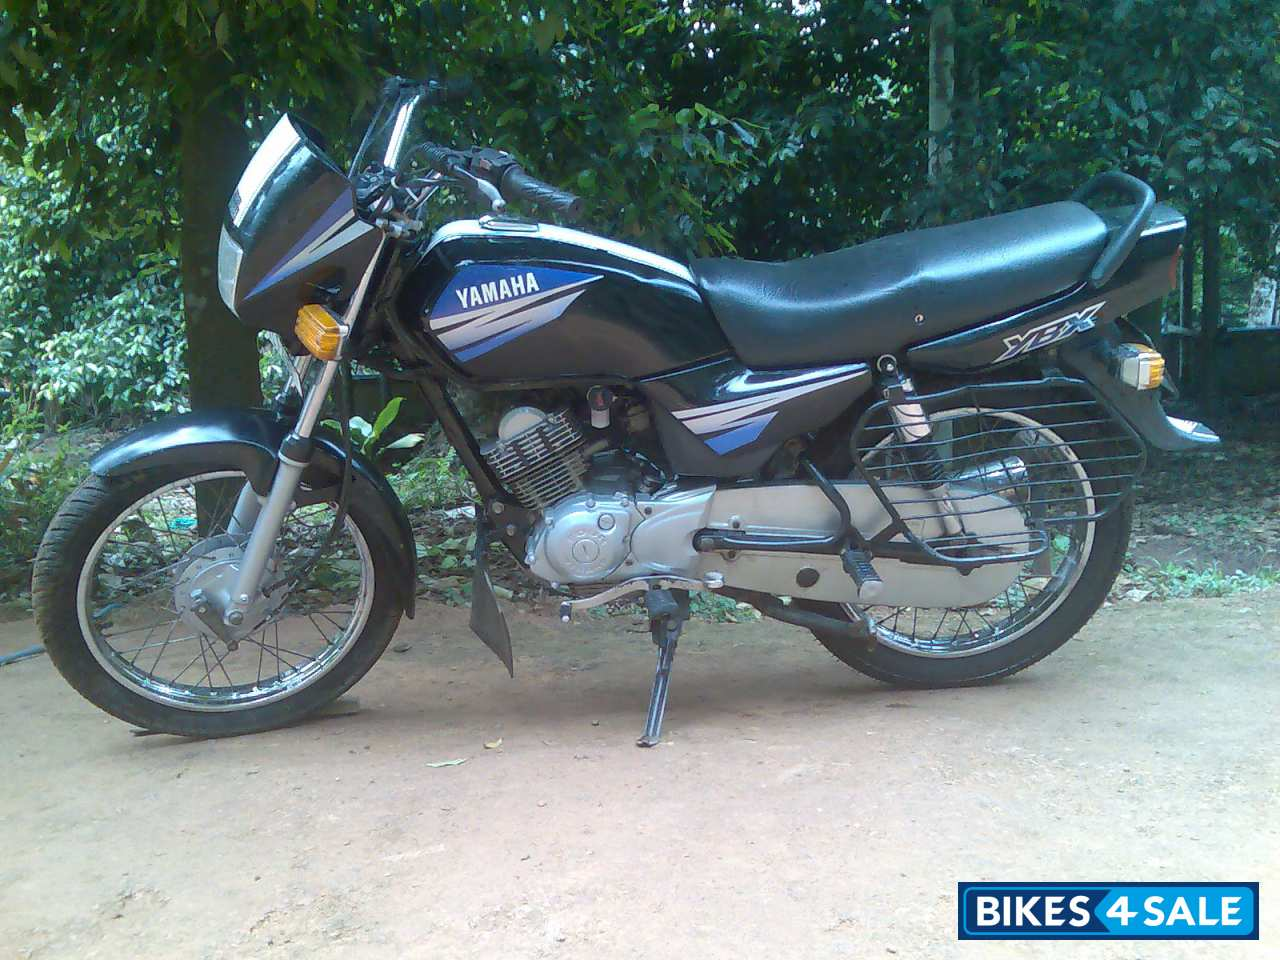 Bajaj Scooter Sale Moped Bikes For Sale Bicycling And The